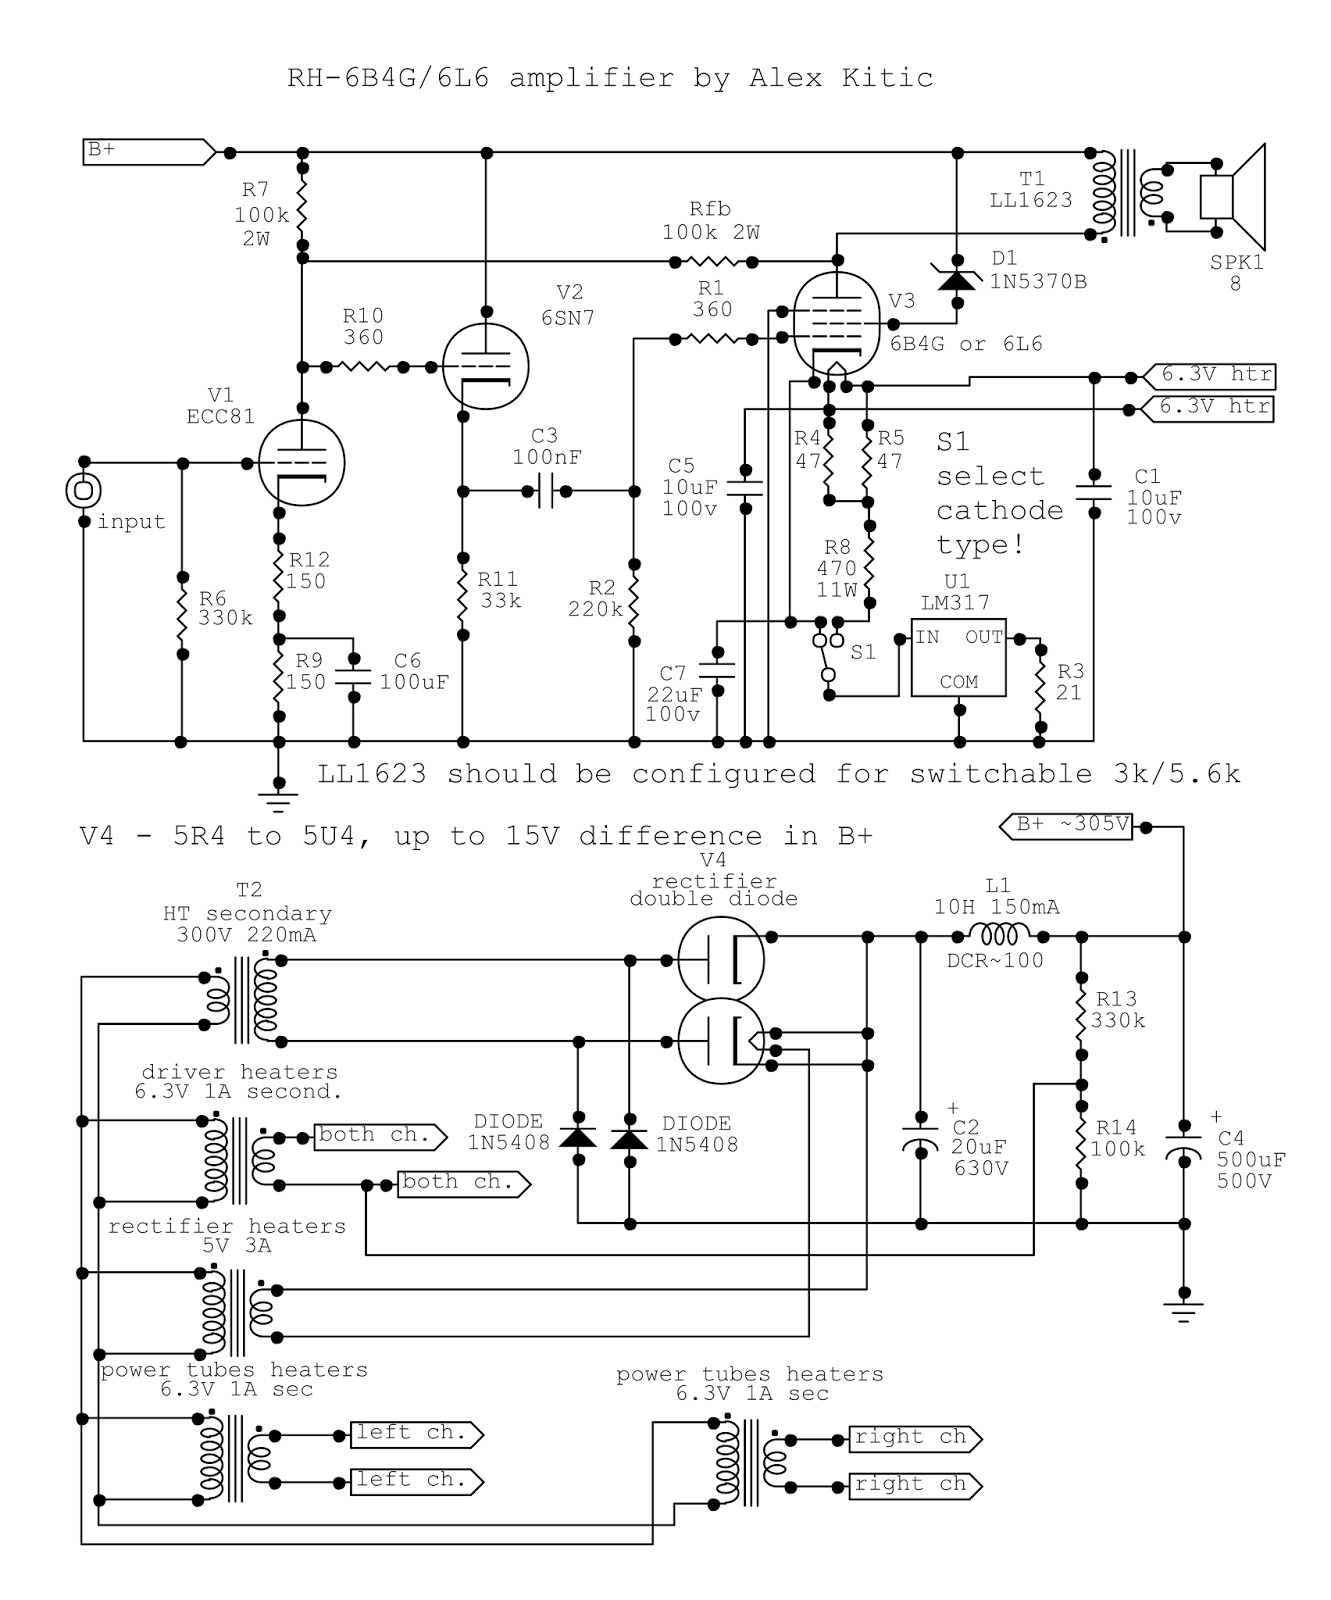 Rh Amplifiers Rh2a3 An Amplifier With A Twist The Circuit Connections Are Pretty Straightforward And Basic Besides 63v Heater Windings For Output Tubes 6l6 Types Draw 09v Which Is Almost Identical To 1a Drawn By 6b4g Main Difference